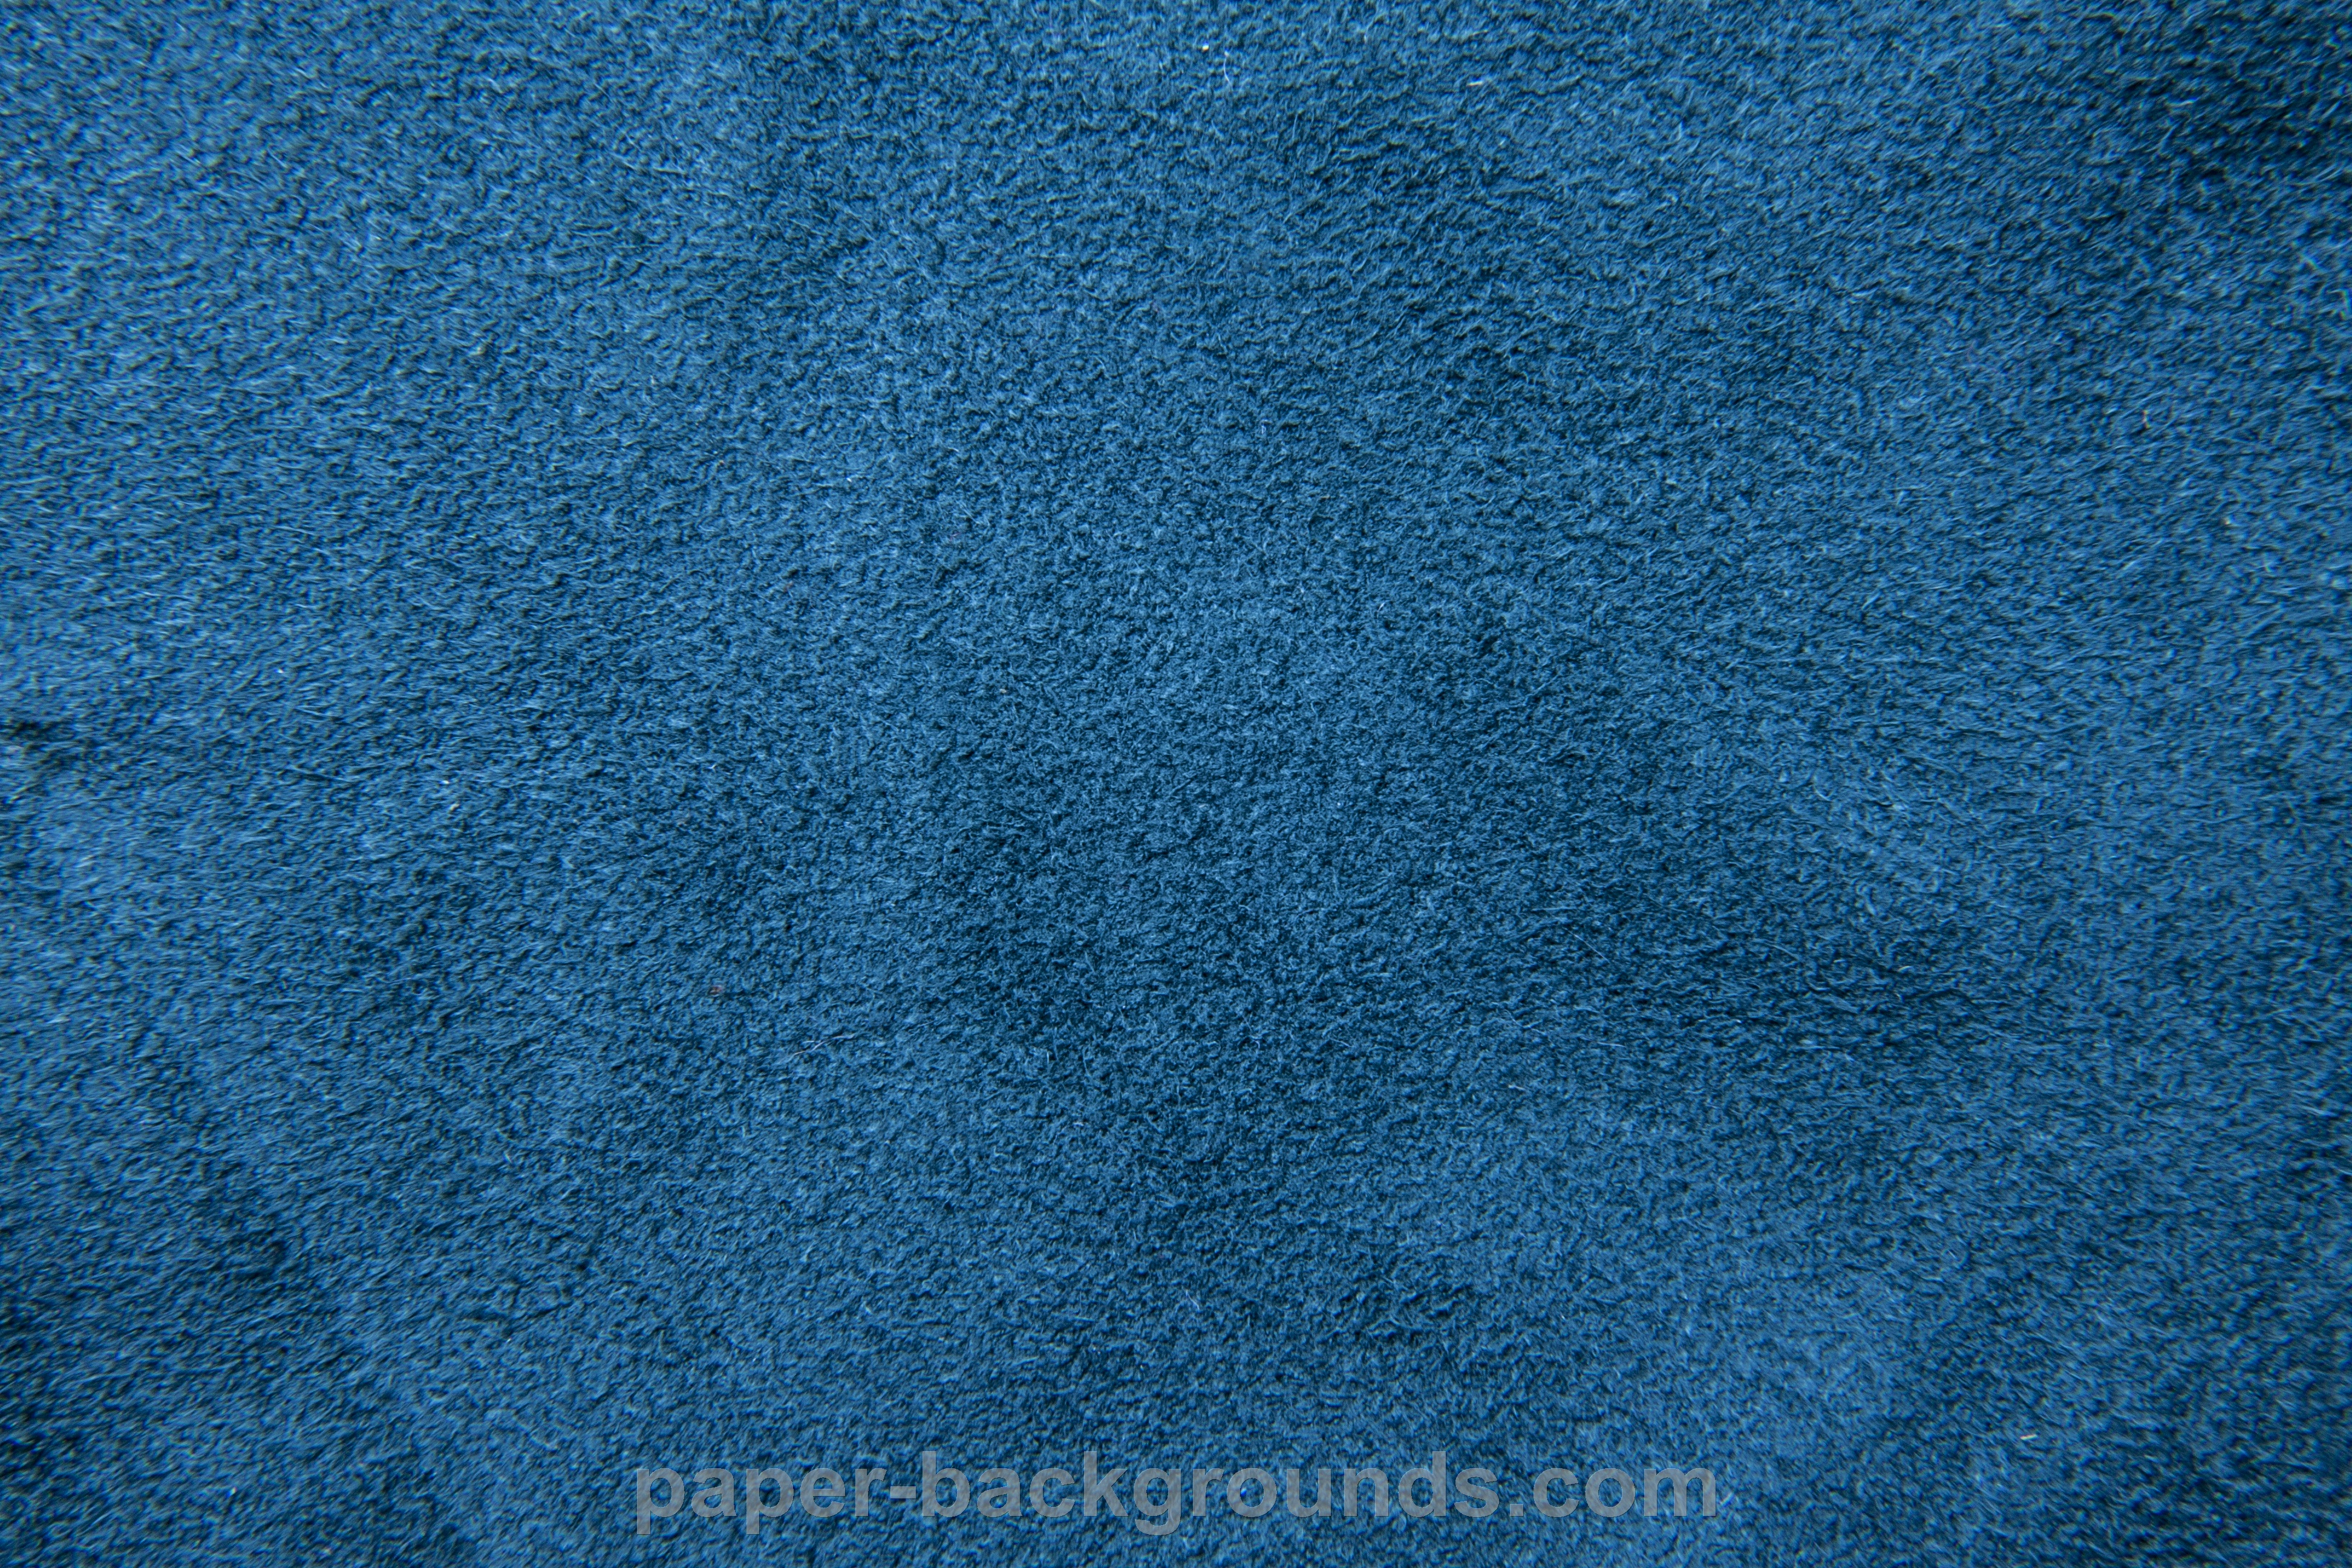 Paper Backgrounds | Blue Soft Fabric Cloth Texture Background High ...